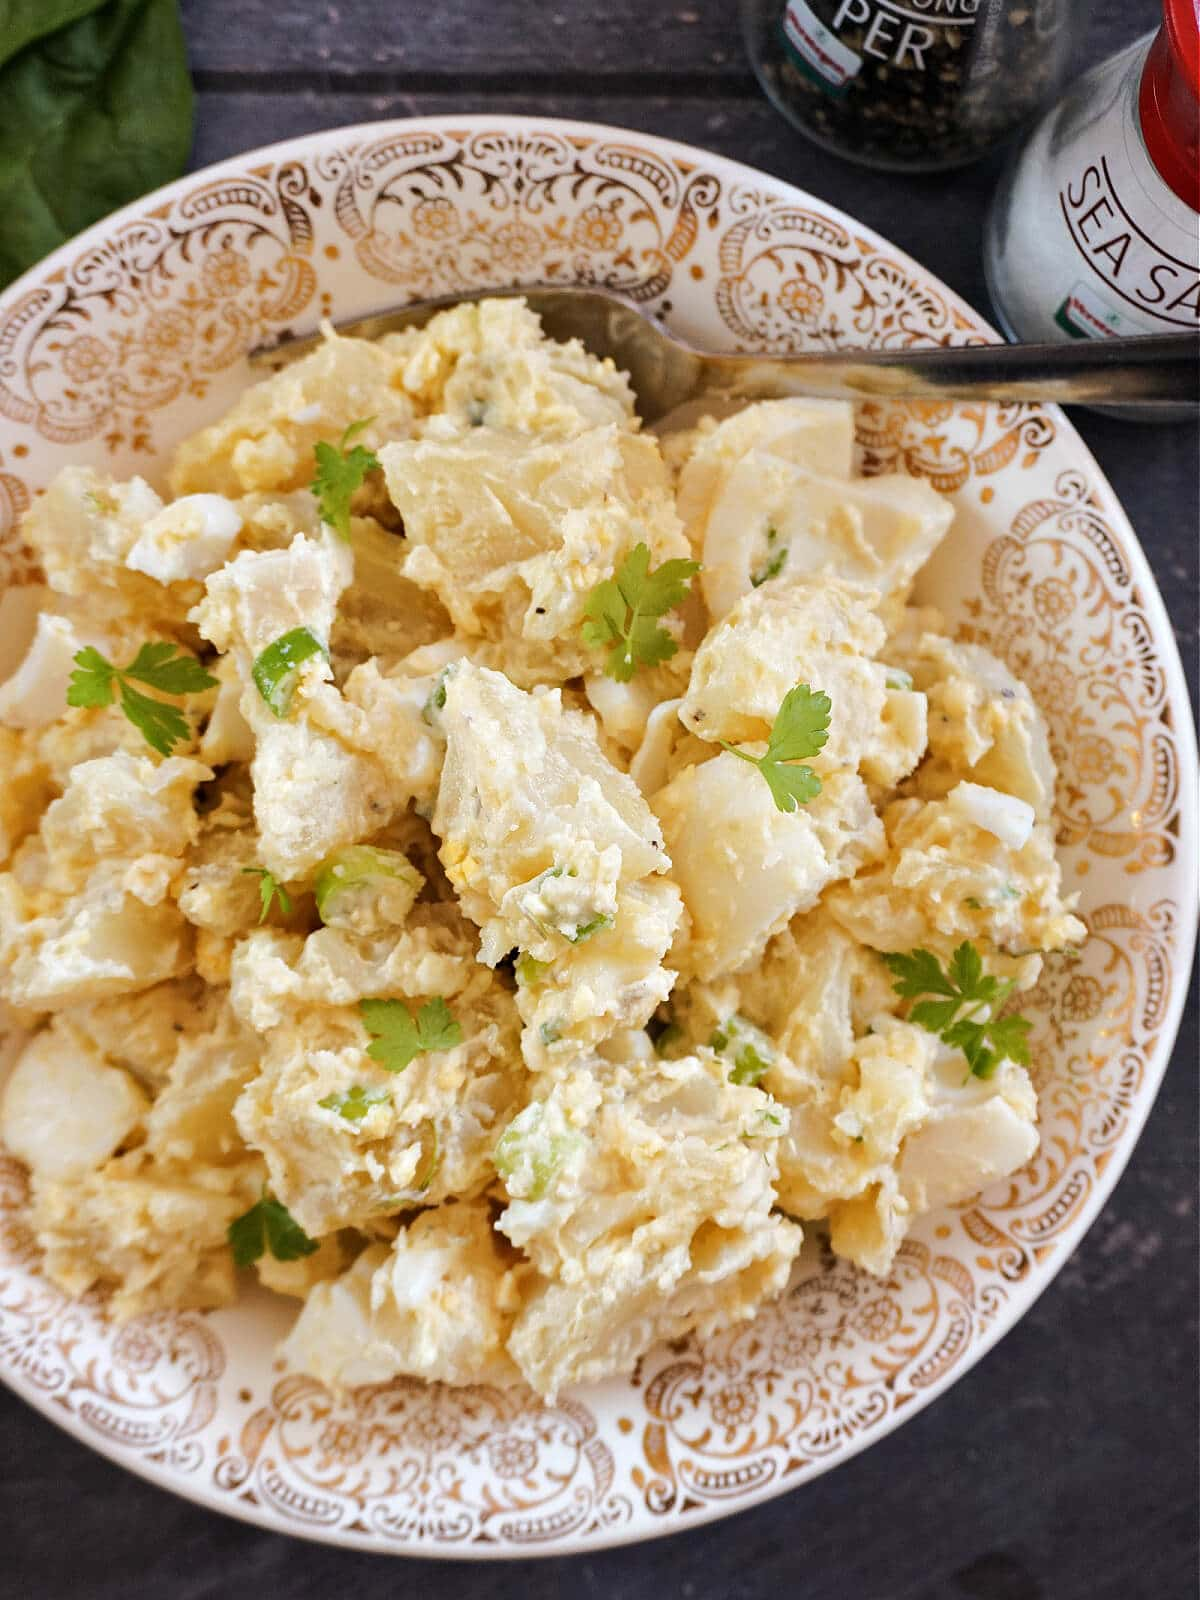 A plate with potato salad garnished with fresh parsley